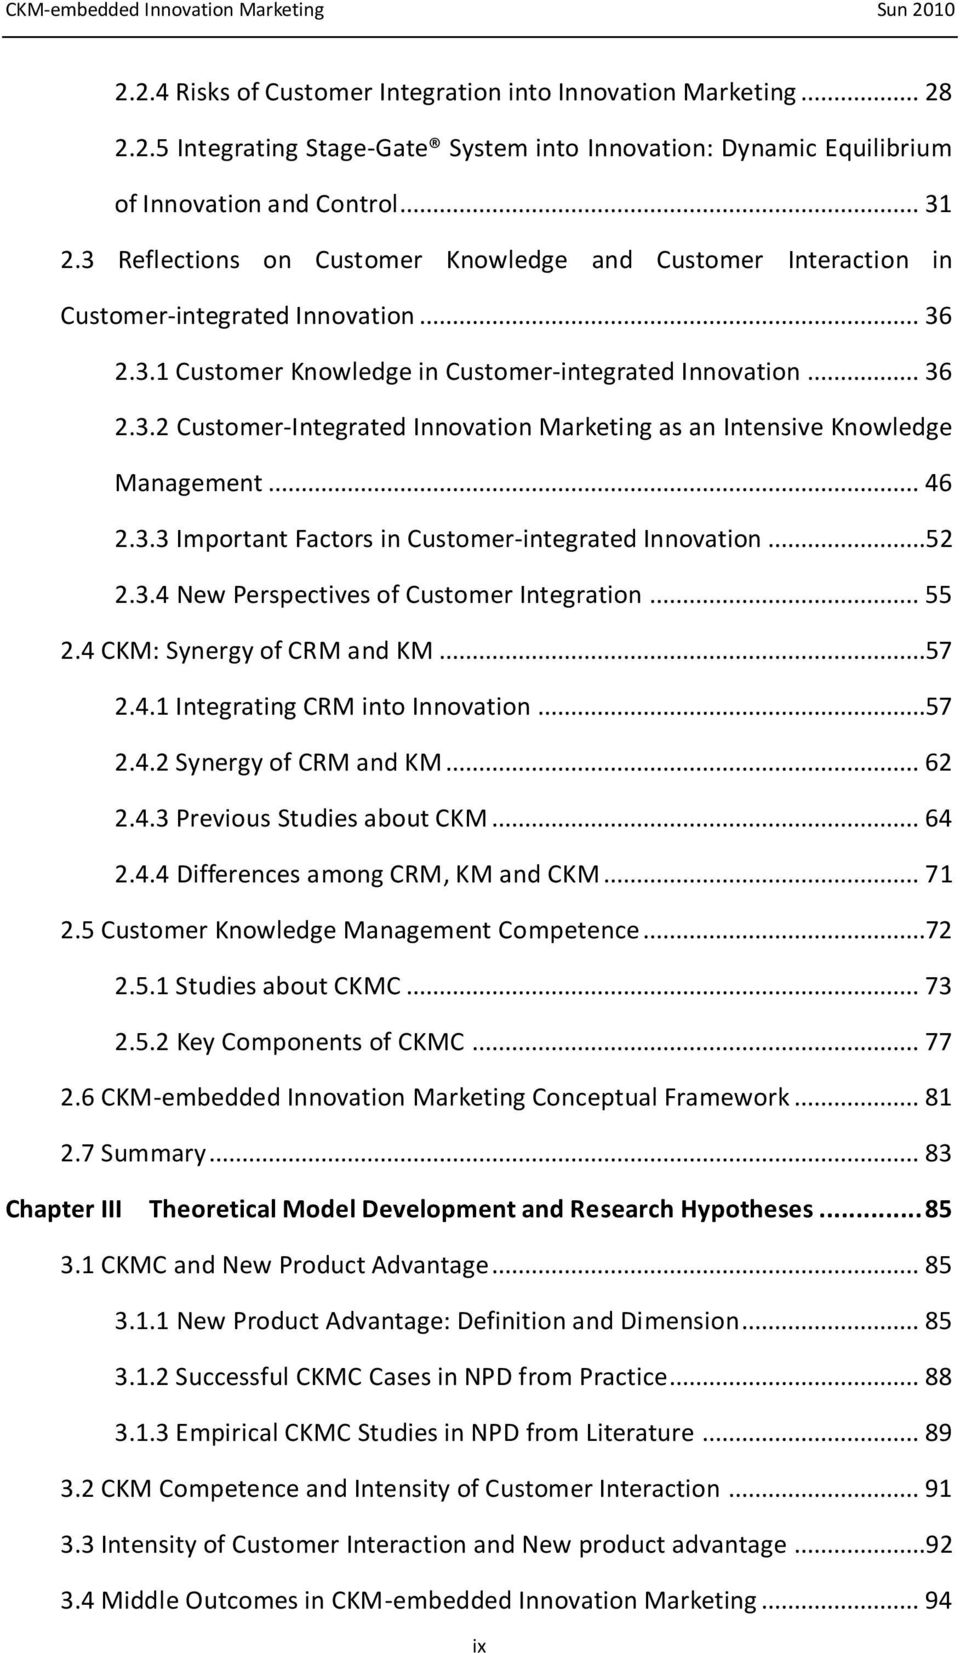 .. 46 2.3.3 Important Factors in Customer-integrated Innovation...52 2.3.4 New Perspectives of Customer Integration... 55 2.4 CKM: Synergy of CRM and KM...57 2.4.1 Integrating CRM into Innovation.